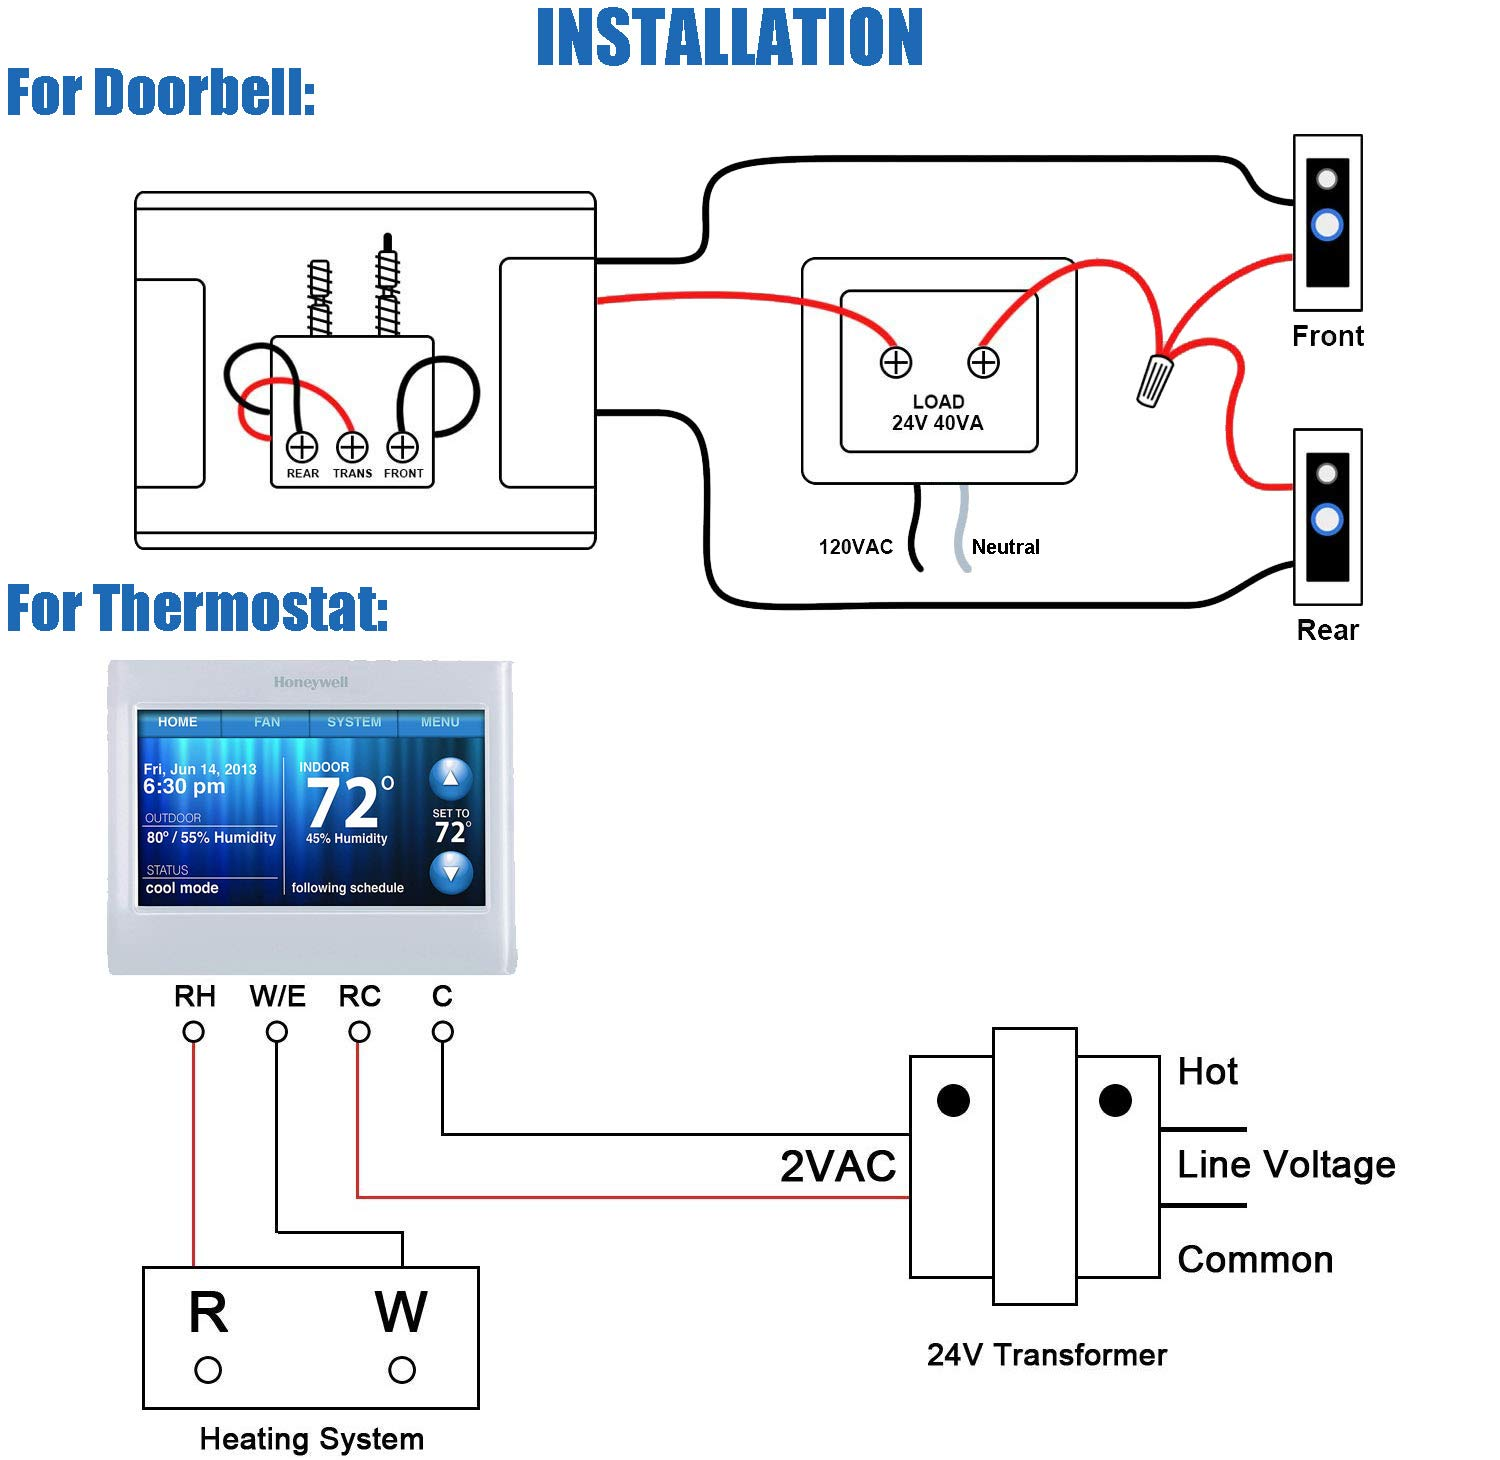 24v 40va Thermostat Doorbell Transformer Power Supply 120vac Input 24vac Output - Compatible With Honeywell, Ecobee, Nest, Sensi Thermostat And All Versions Of Ring Doorbell  Industrial & Scientific